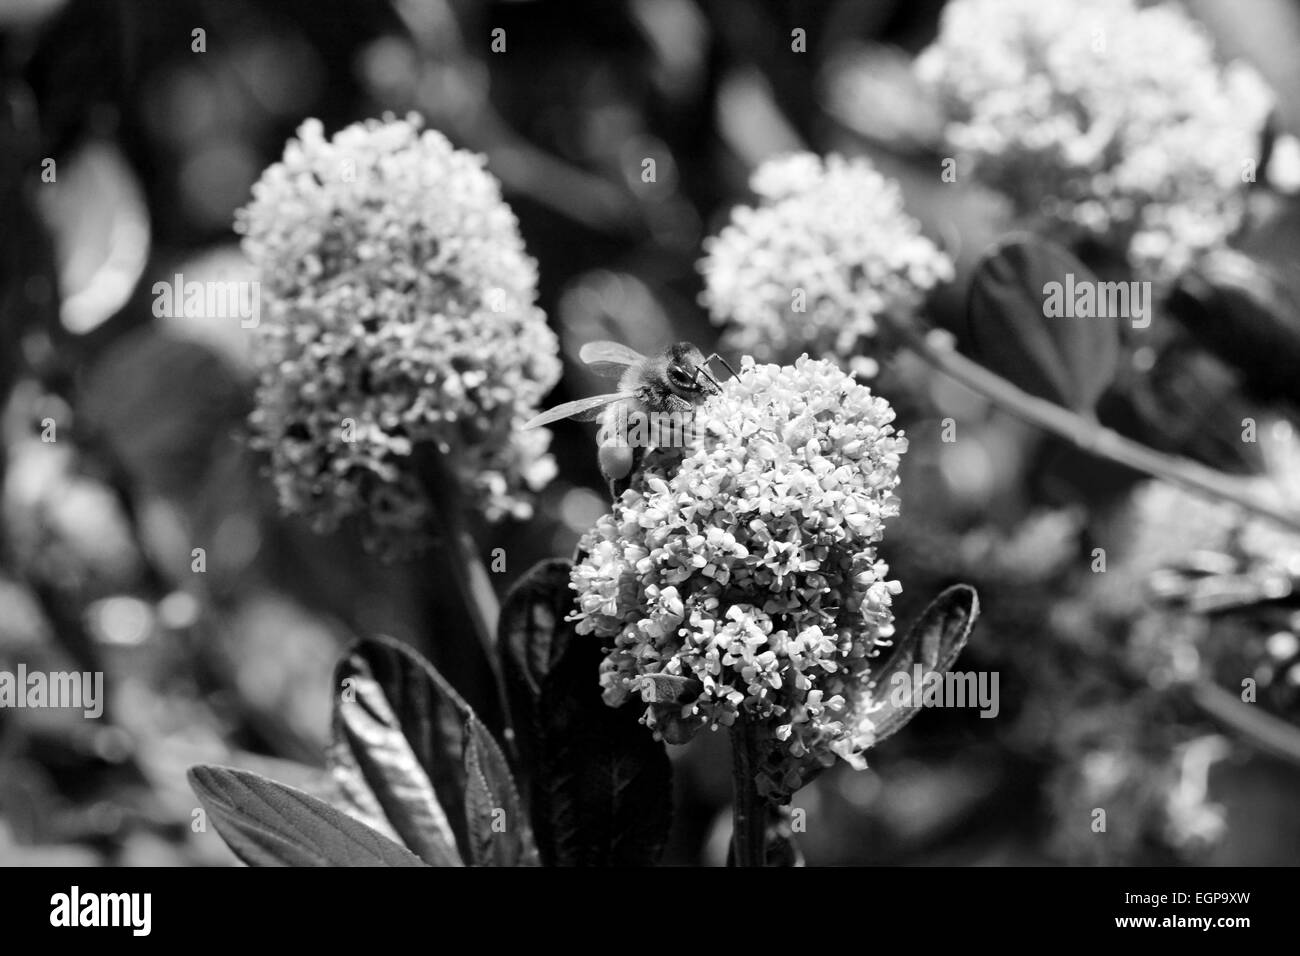 Macro of a honeybee collecting pollen from ceanothus flowers - monochrome processing - Stock Image